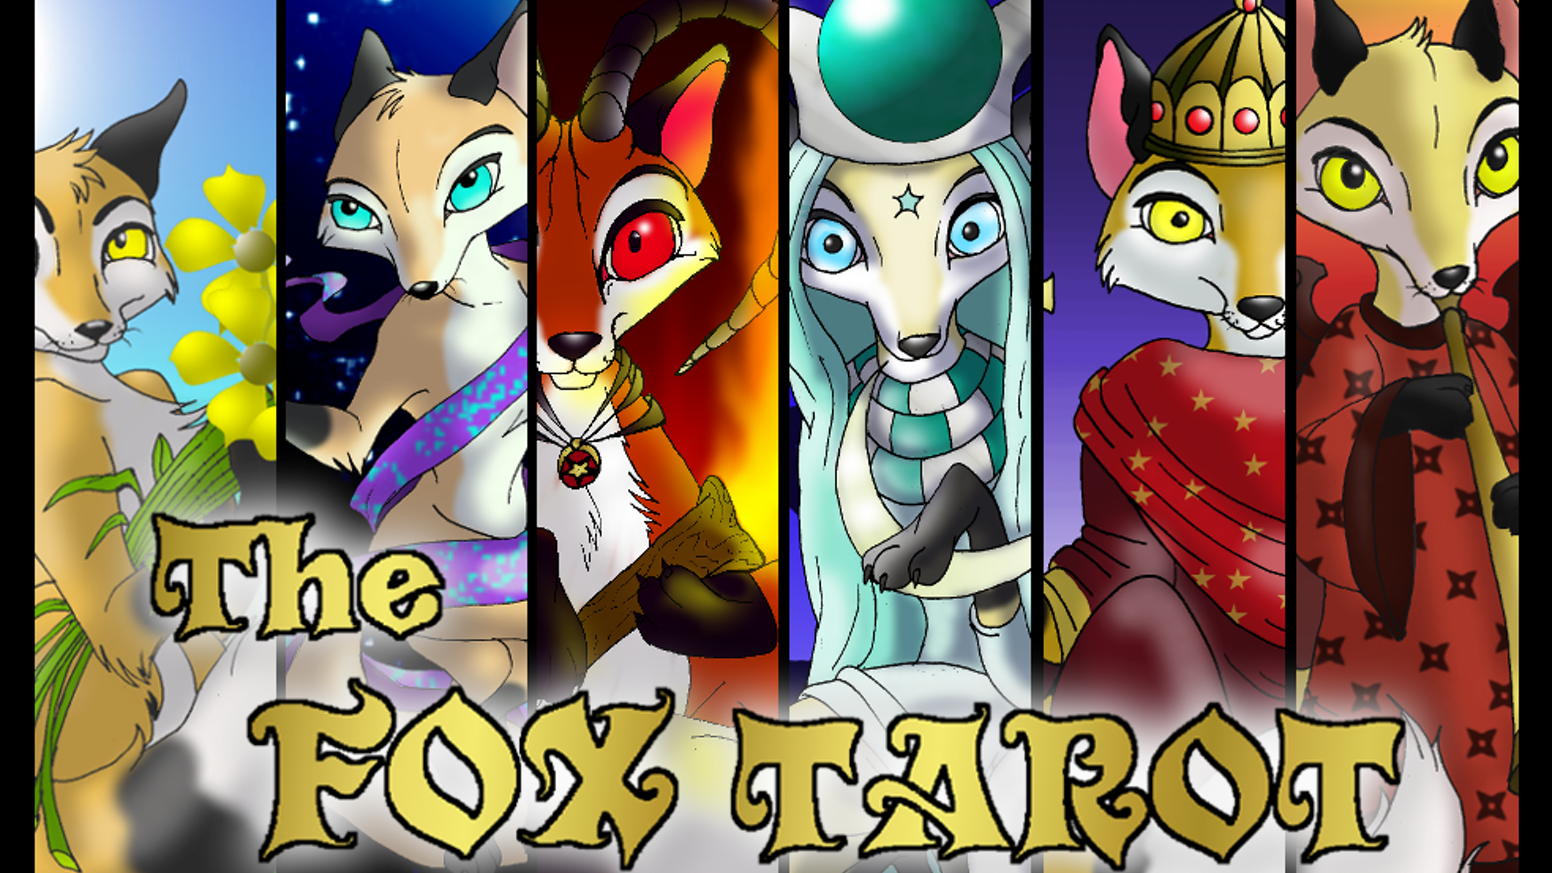 The Fox Tarot is a full tarot deck filled with 78 vividly created fox characters based on the Rider-Waite tarots!